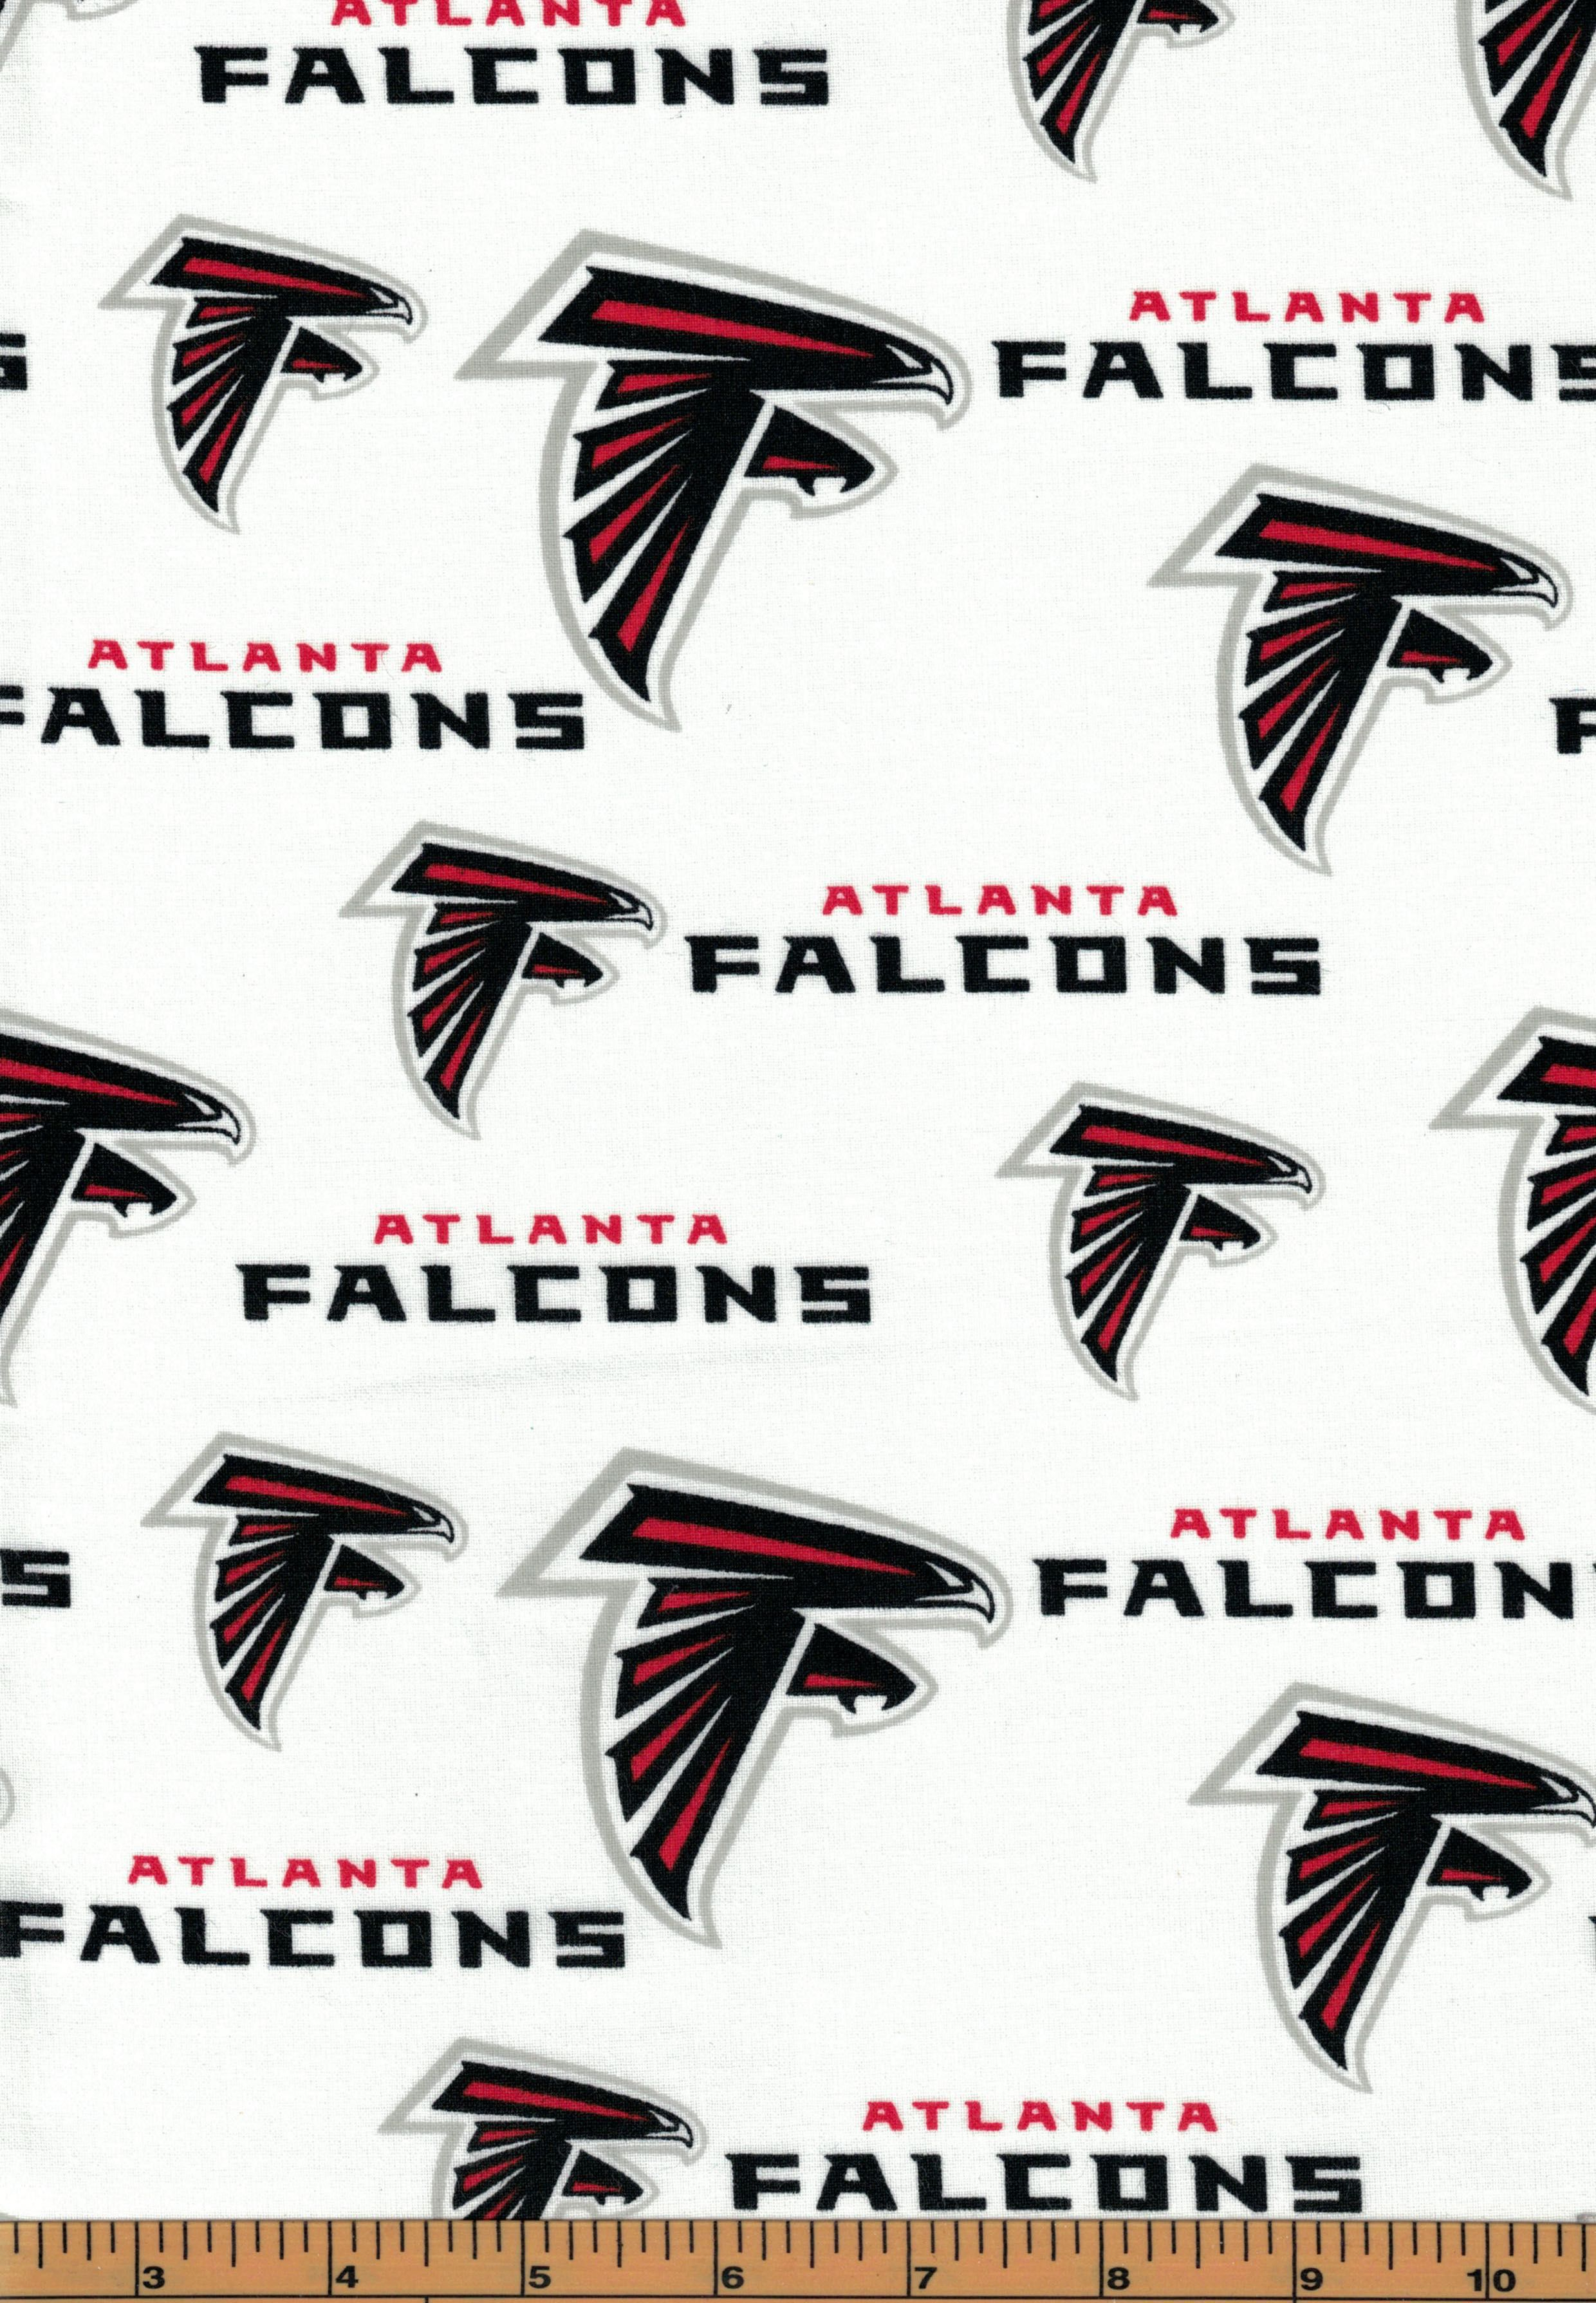 Atlanta Falcons Nfl Football Fabric 100 Cotton Sold By The Half Yard Quilts On The Fly In 2020 Football Fabric Atlanta Falcons Atlanta Falcons Football